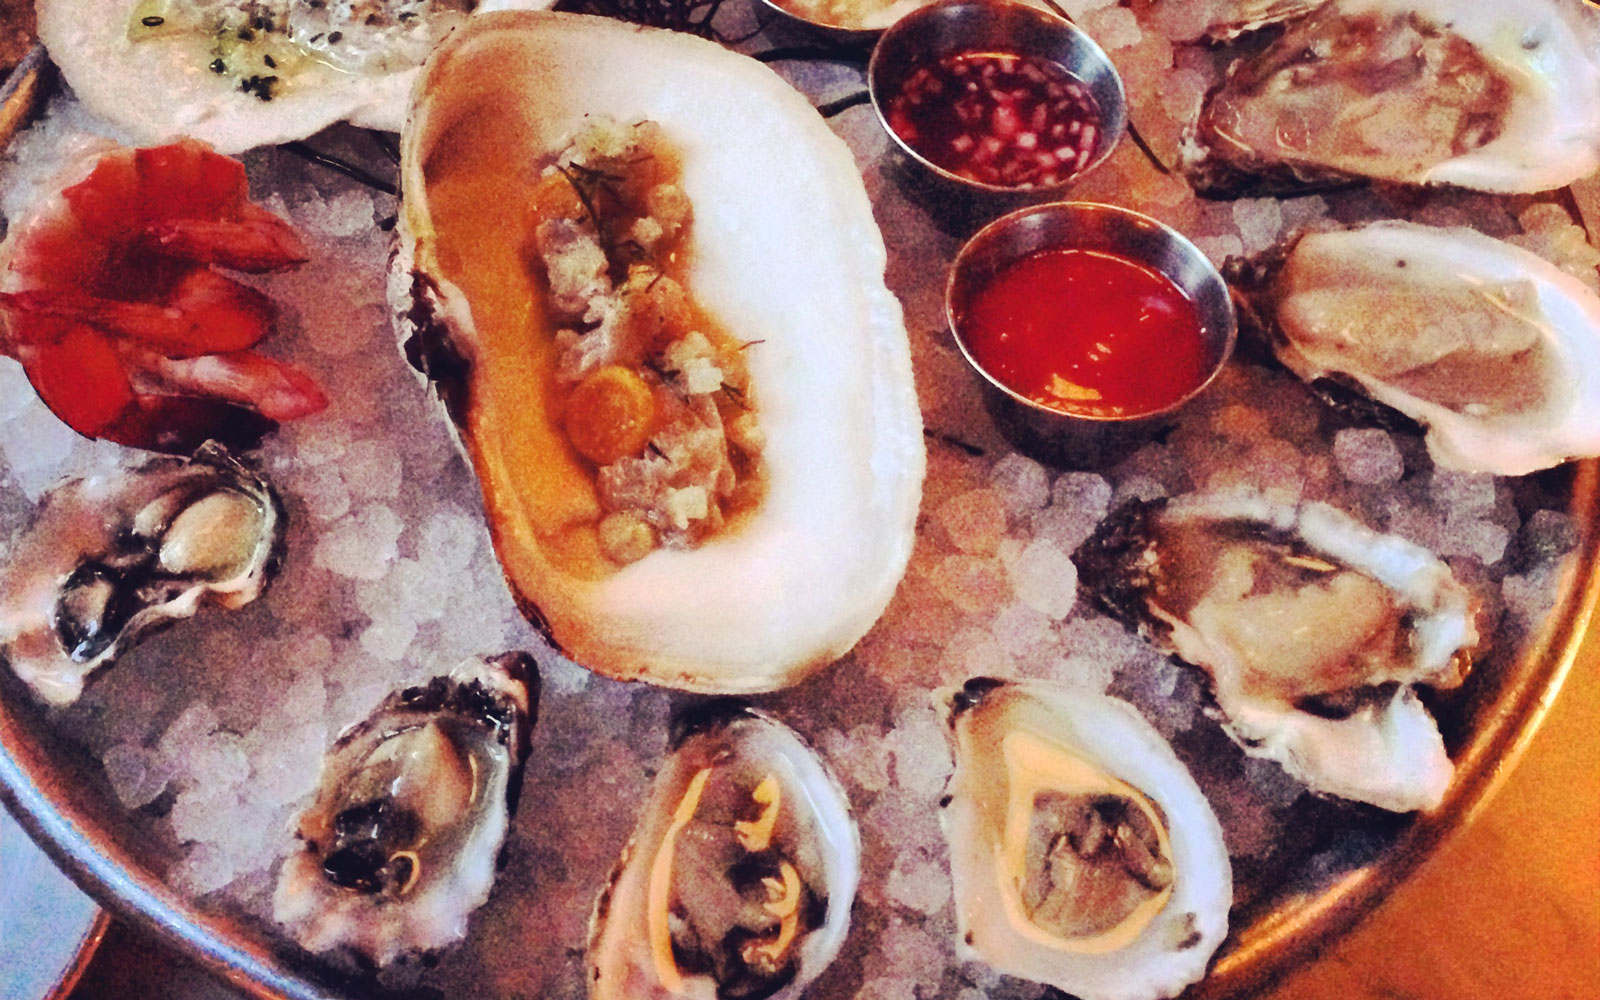 Best Oyster Bars in America: Maison Premiere, Brooklyn, NY